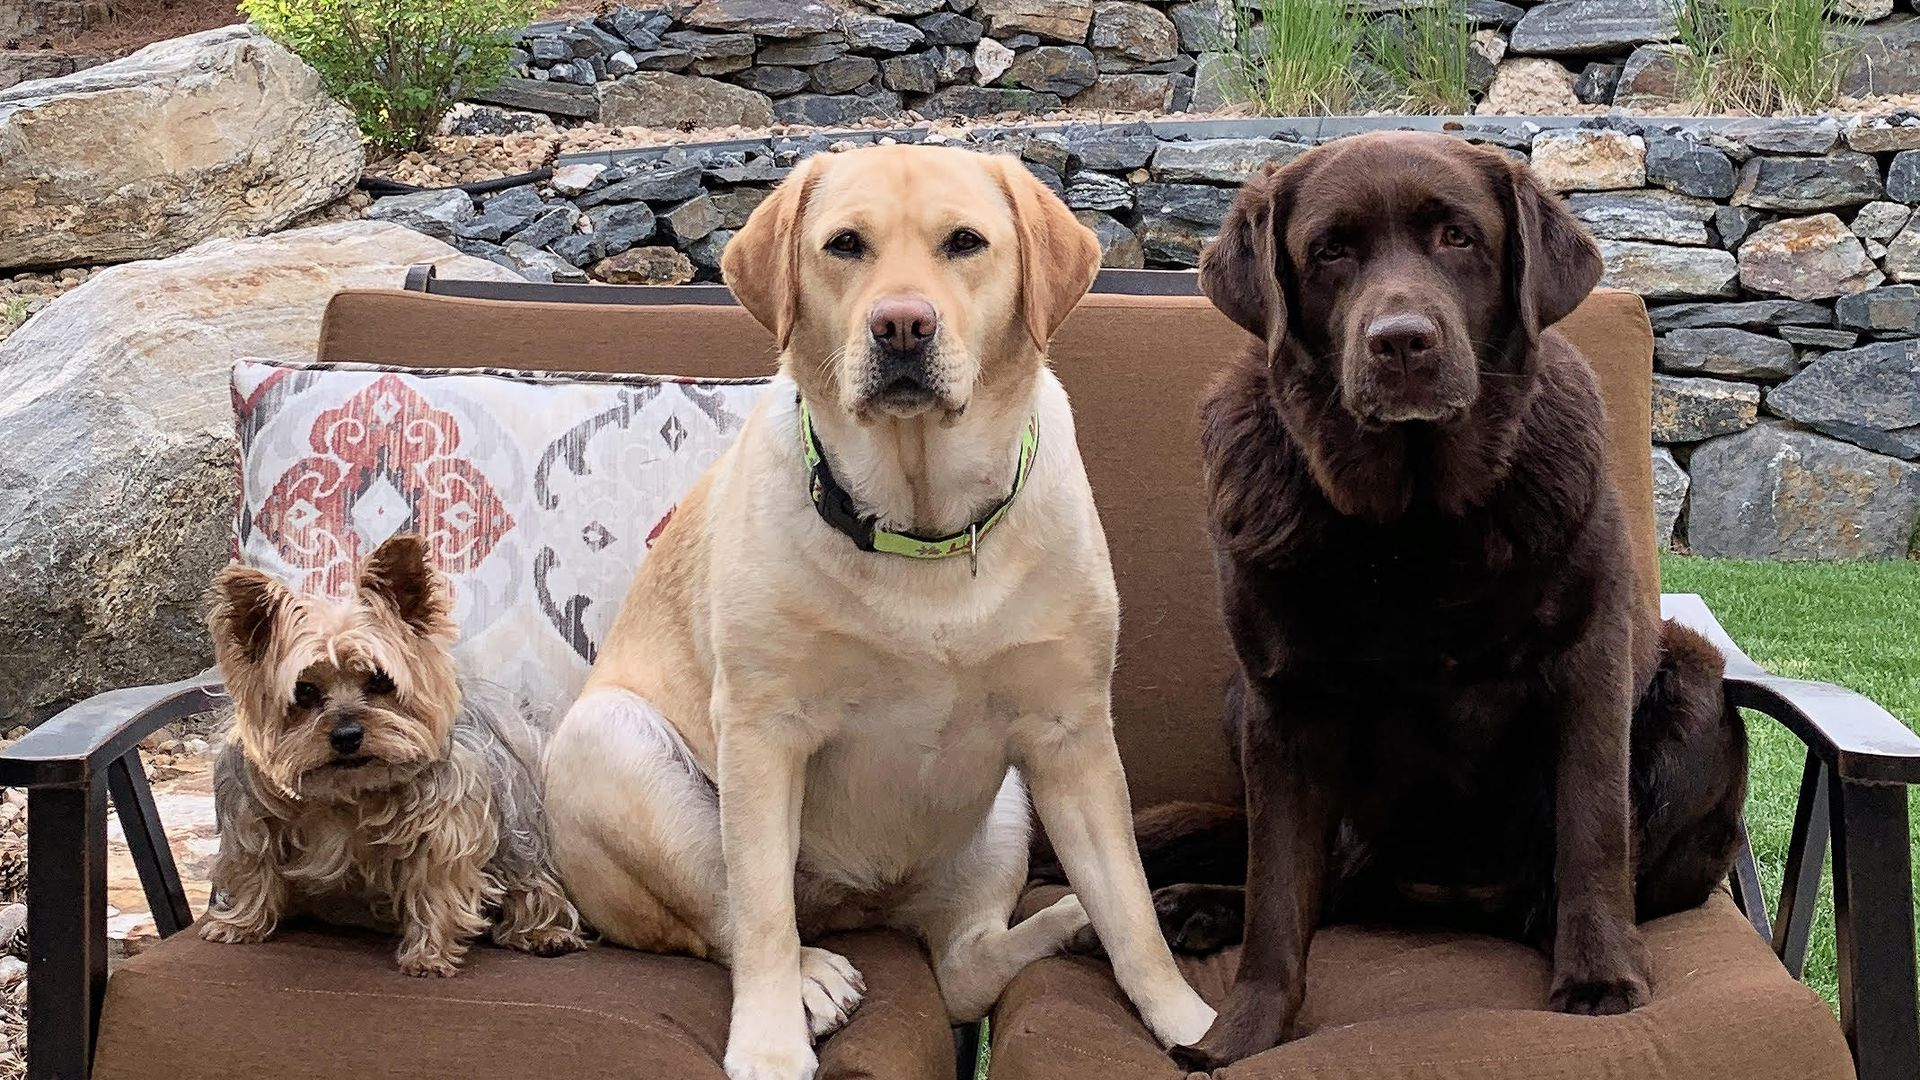 A photo of three dogs -- two labs and a yorkie -- sitting on a couch outside